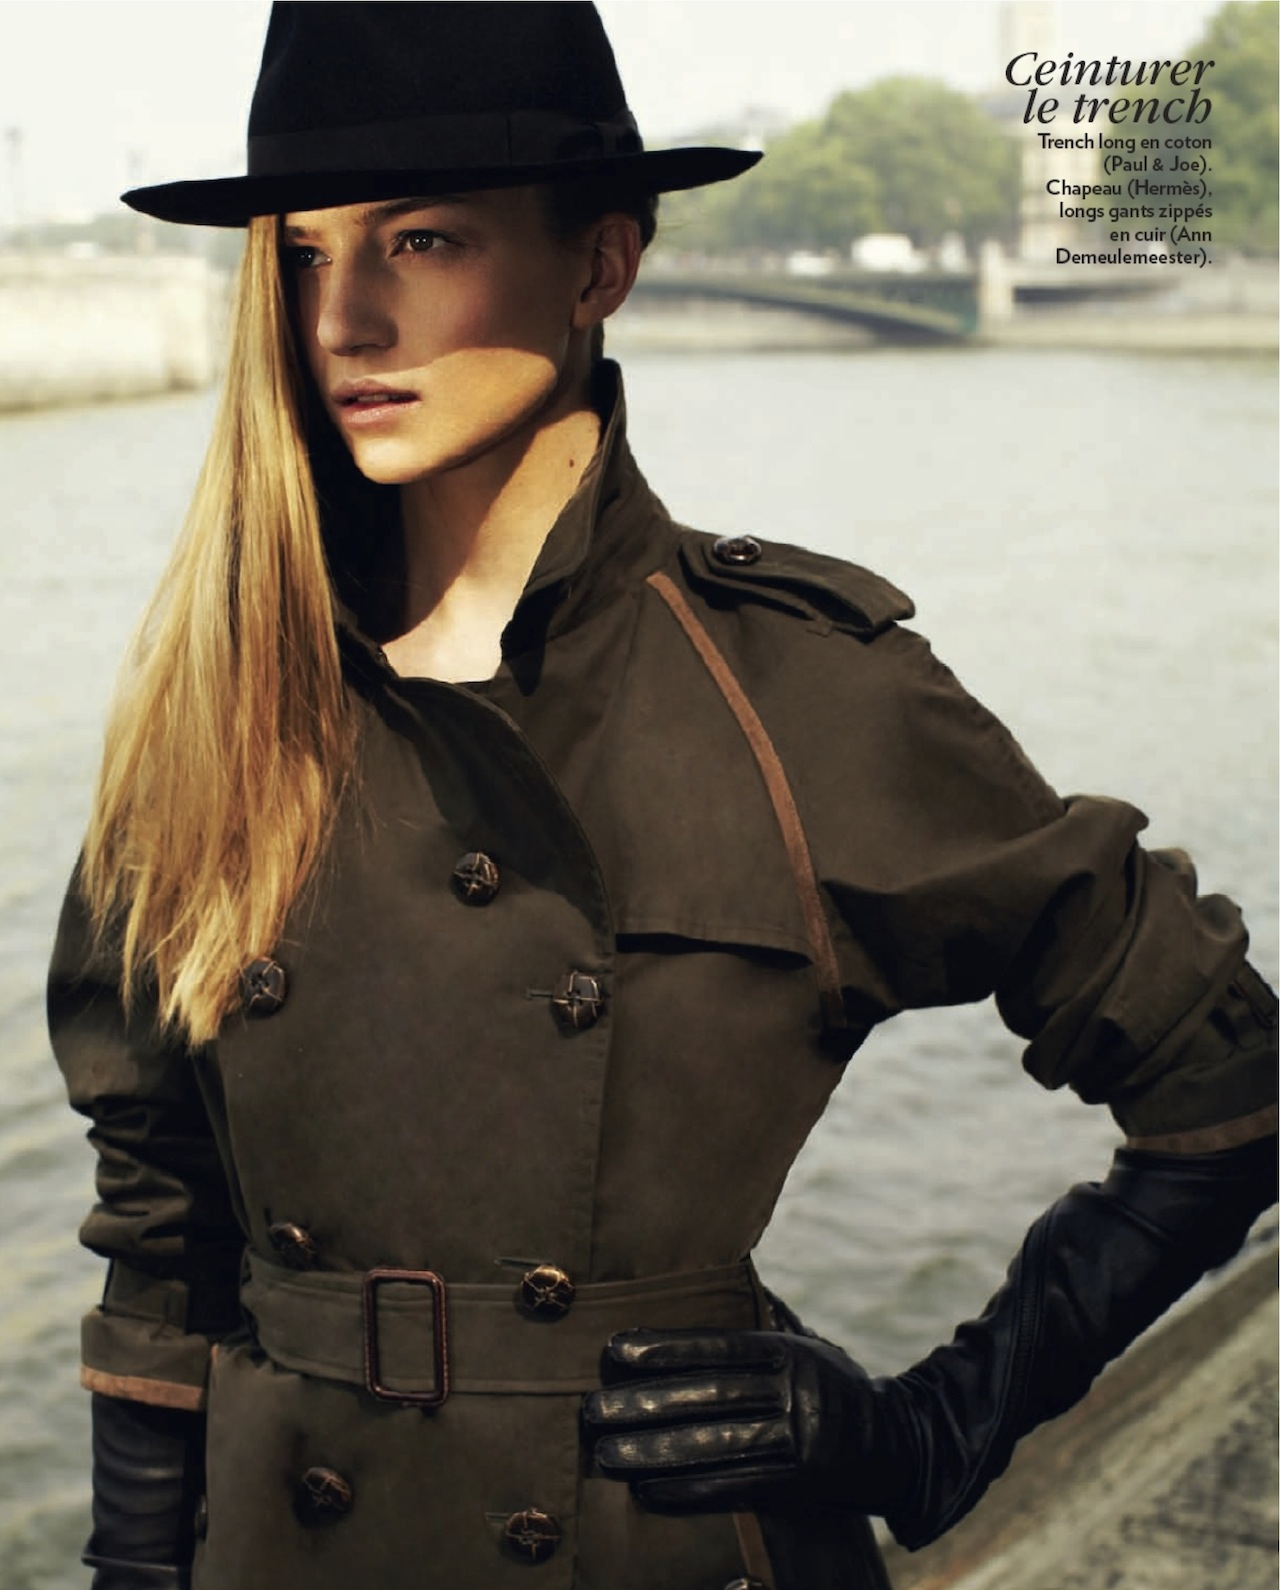 Anne-Marie Van Dijk in Marie Claire France September 2012 (photography: Max Cardelli, styling: Claire Dhelens) via fashioned by love / british fashion blog